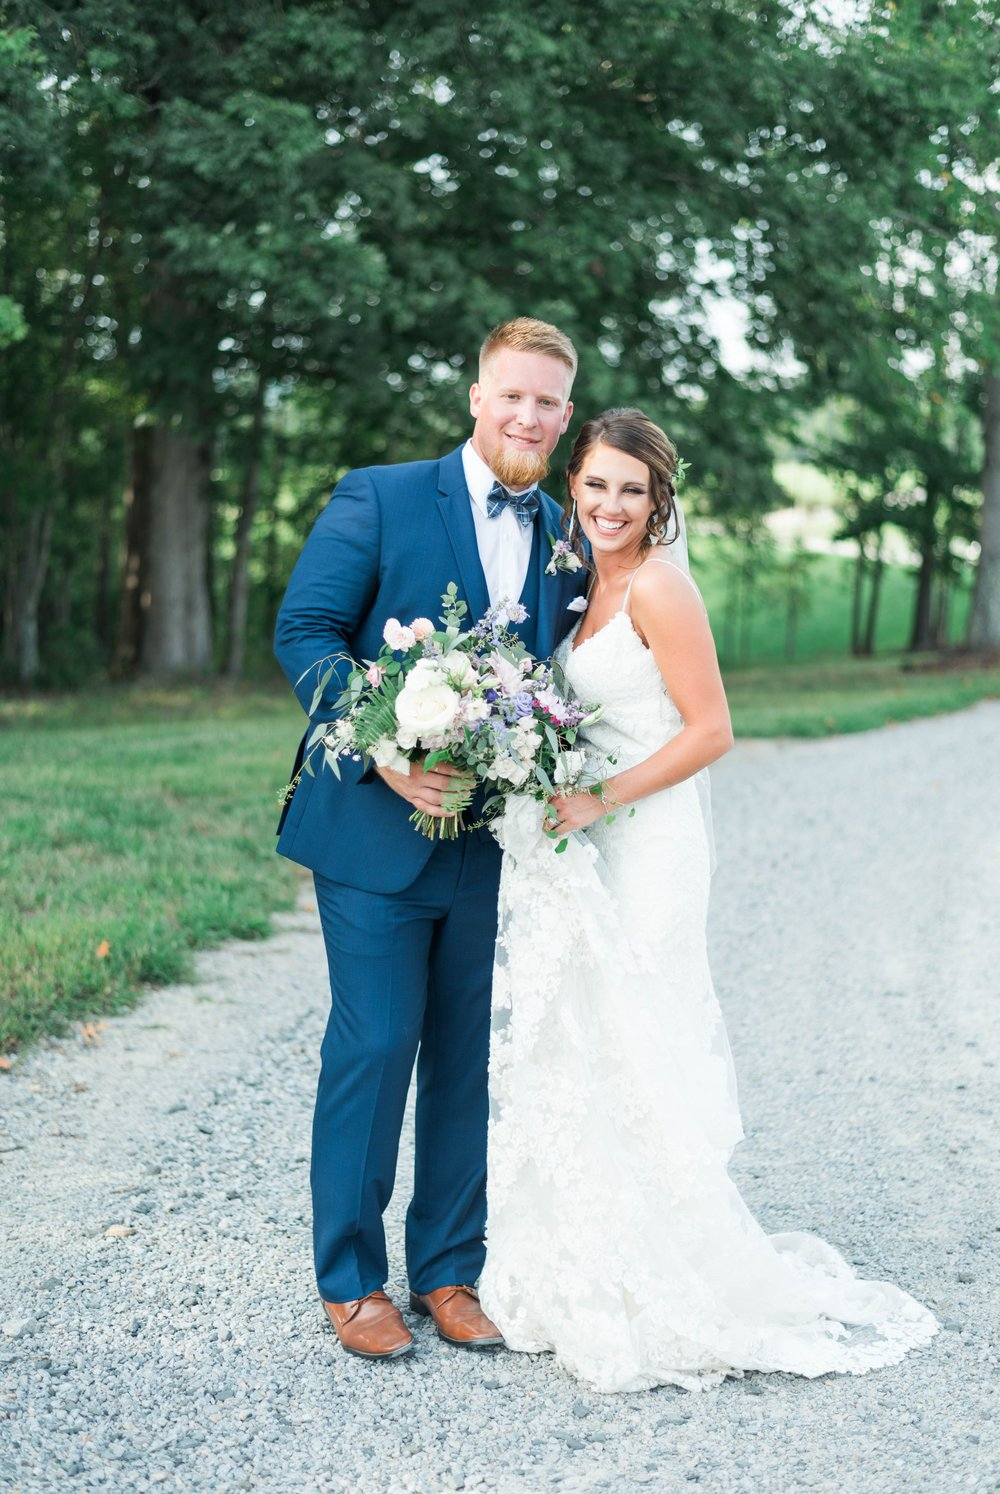 atkinson farms_VirginiaWeddingPhotographer_LynchburgWeddingPhotographer_DylanandLauren 31.jpg